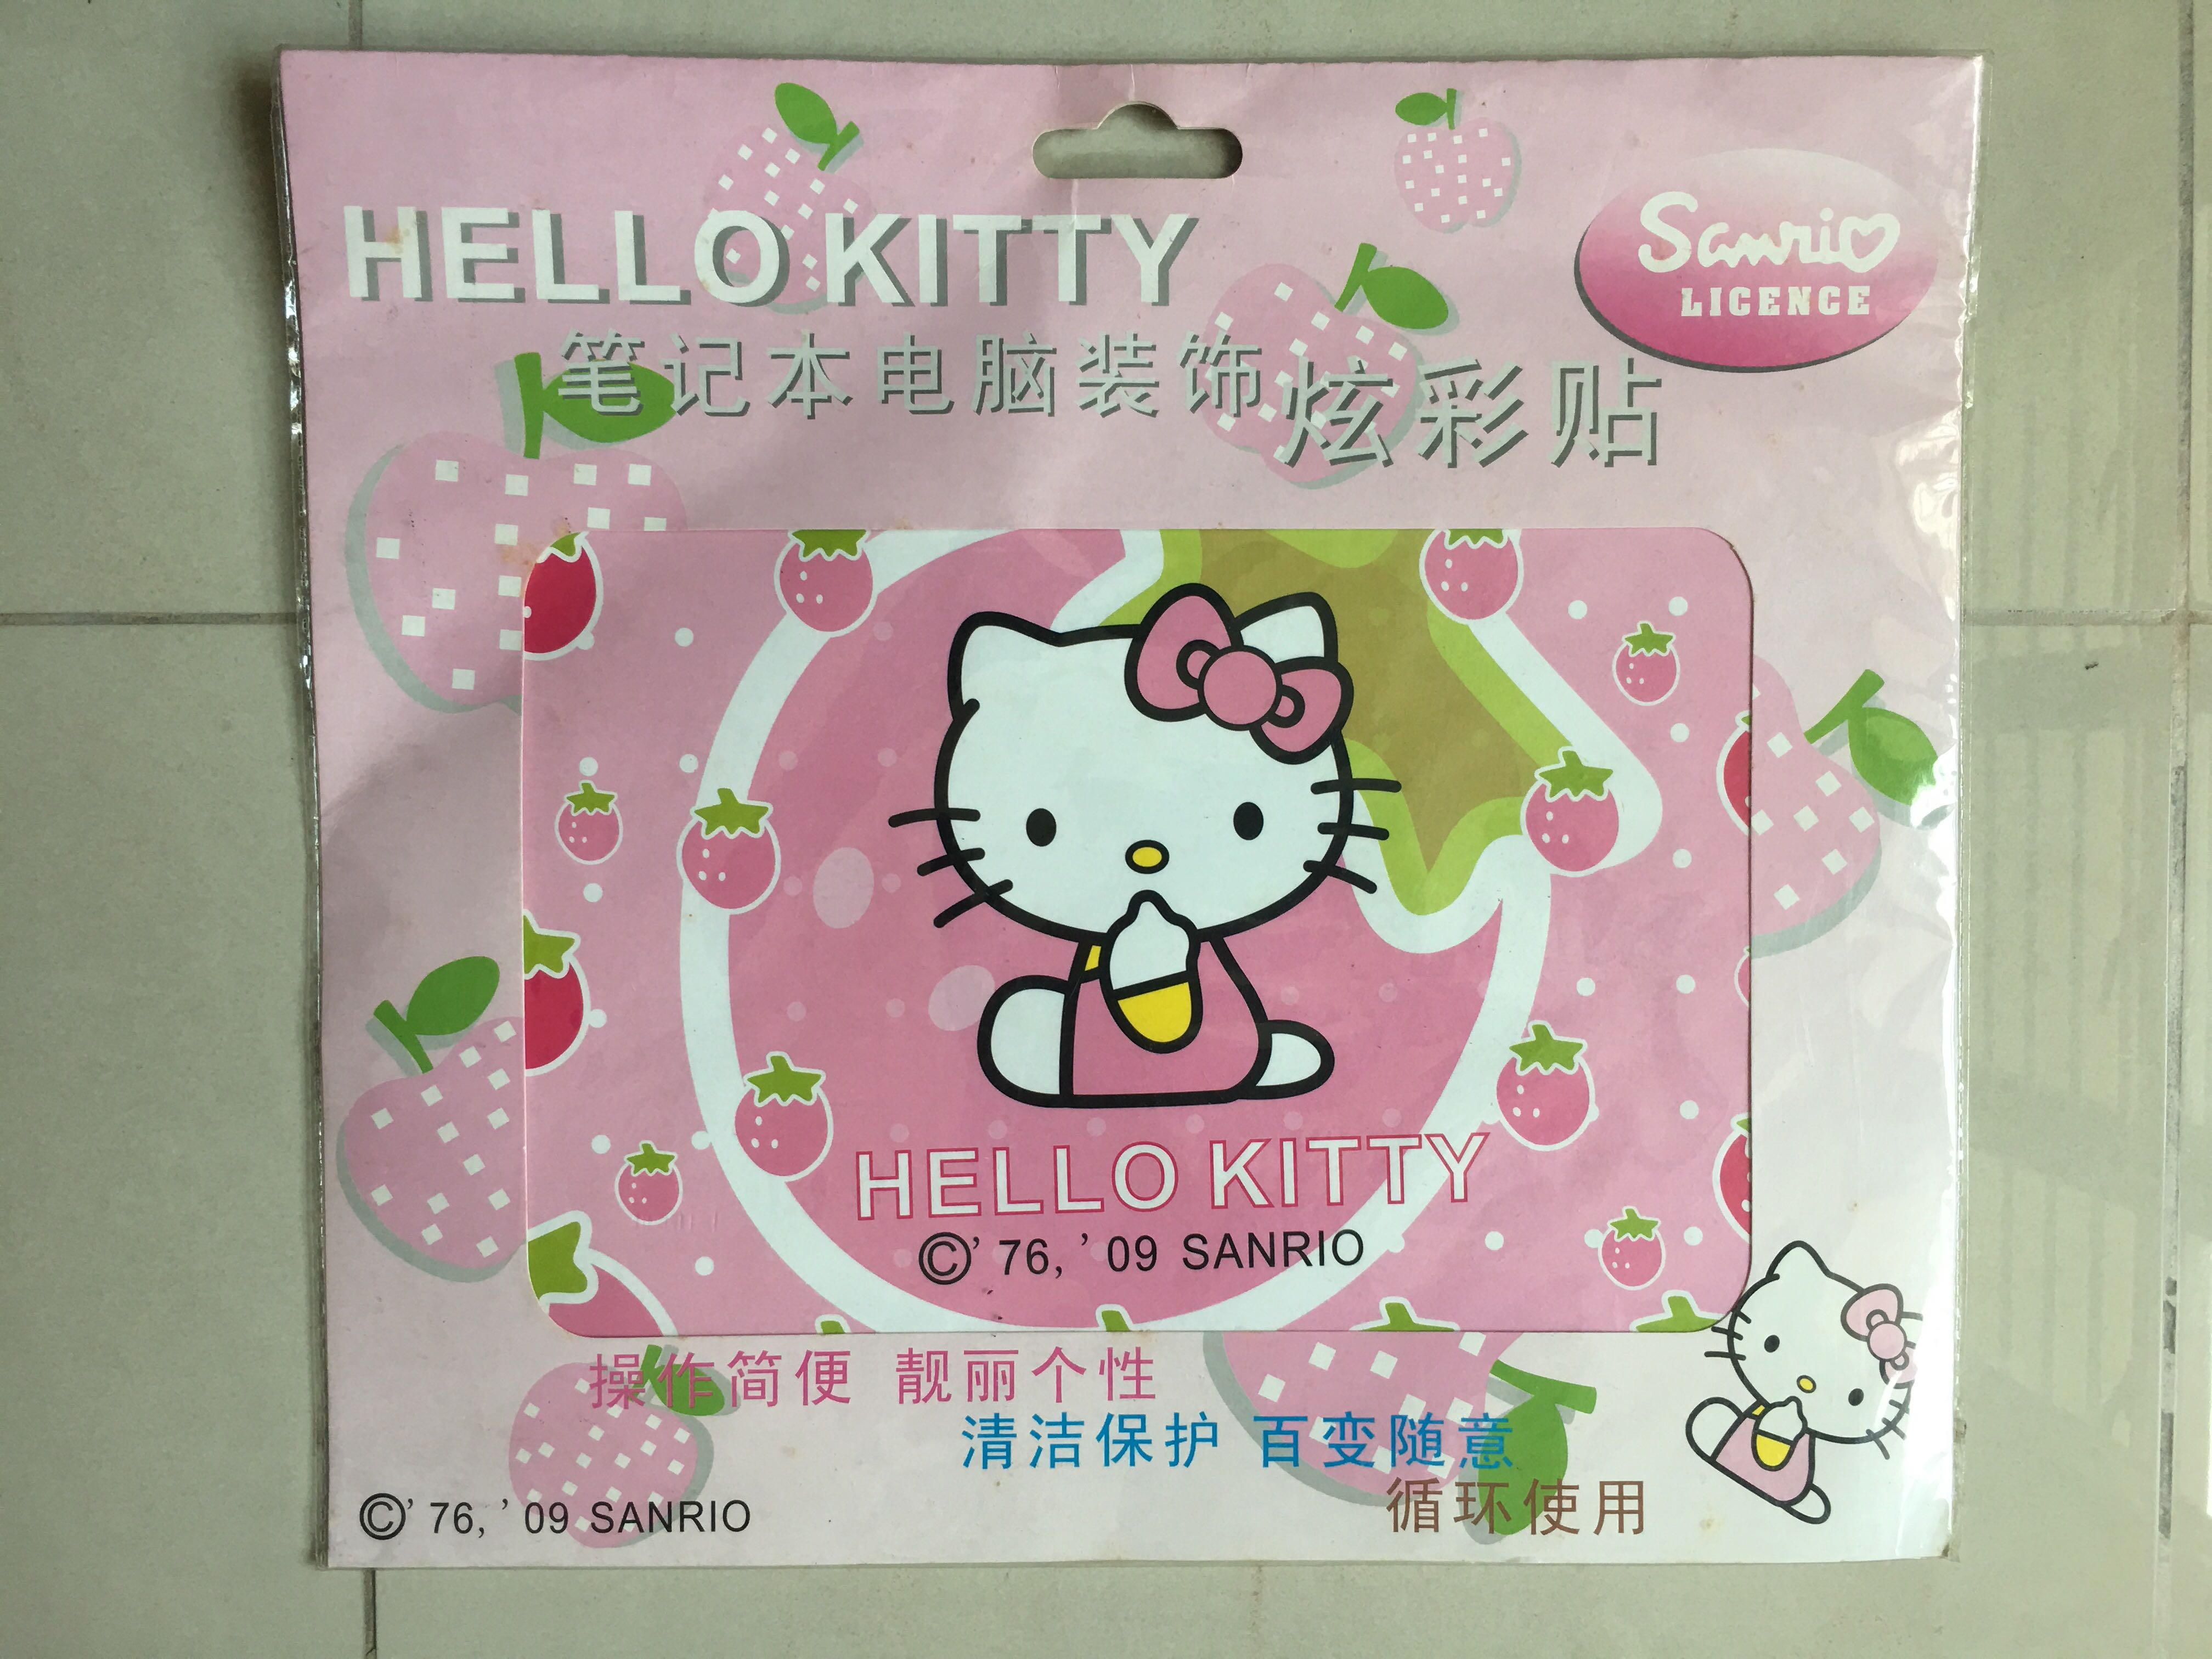 68182f8f7 Hello kitty laptop TOP sticker, Books & Stationery, Stationery on ...